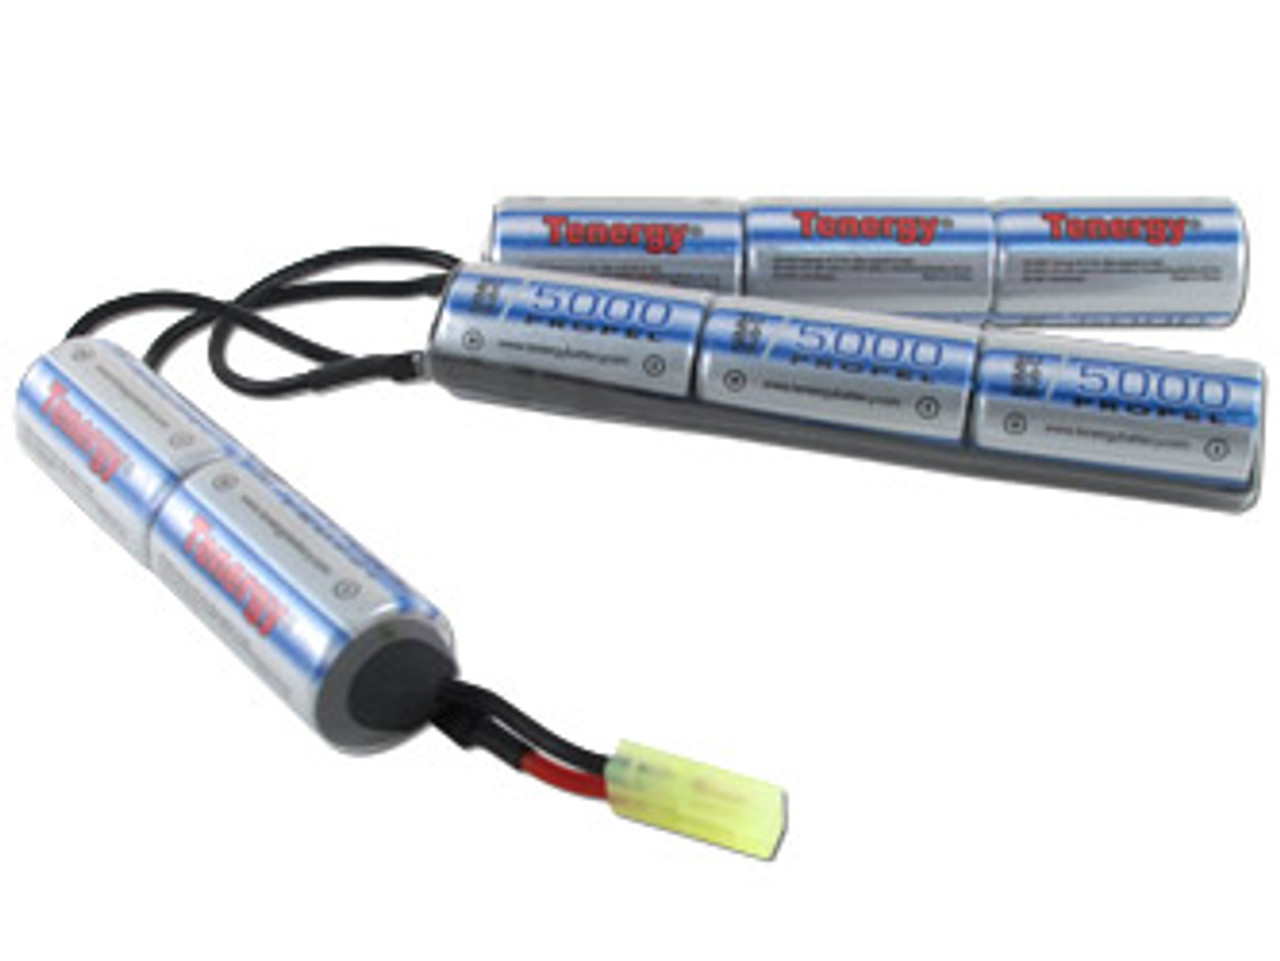 AT: Tenergy 9.6V 5000mAh NiMH Rechargeable Battery Pack (8S1P, 48.0Wh, 30A Rate, Mini Tamiya Connector, Crane Stock)